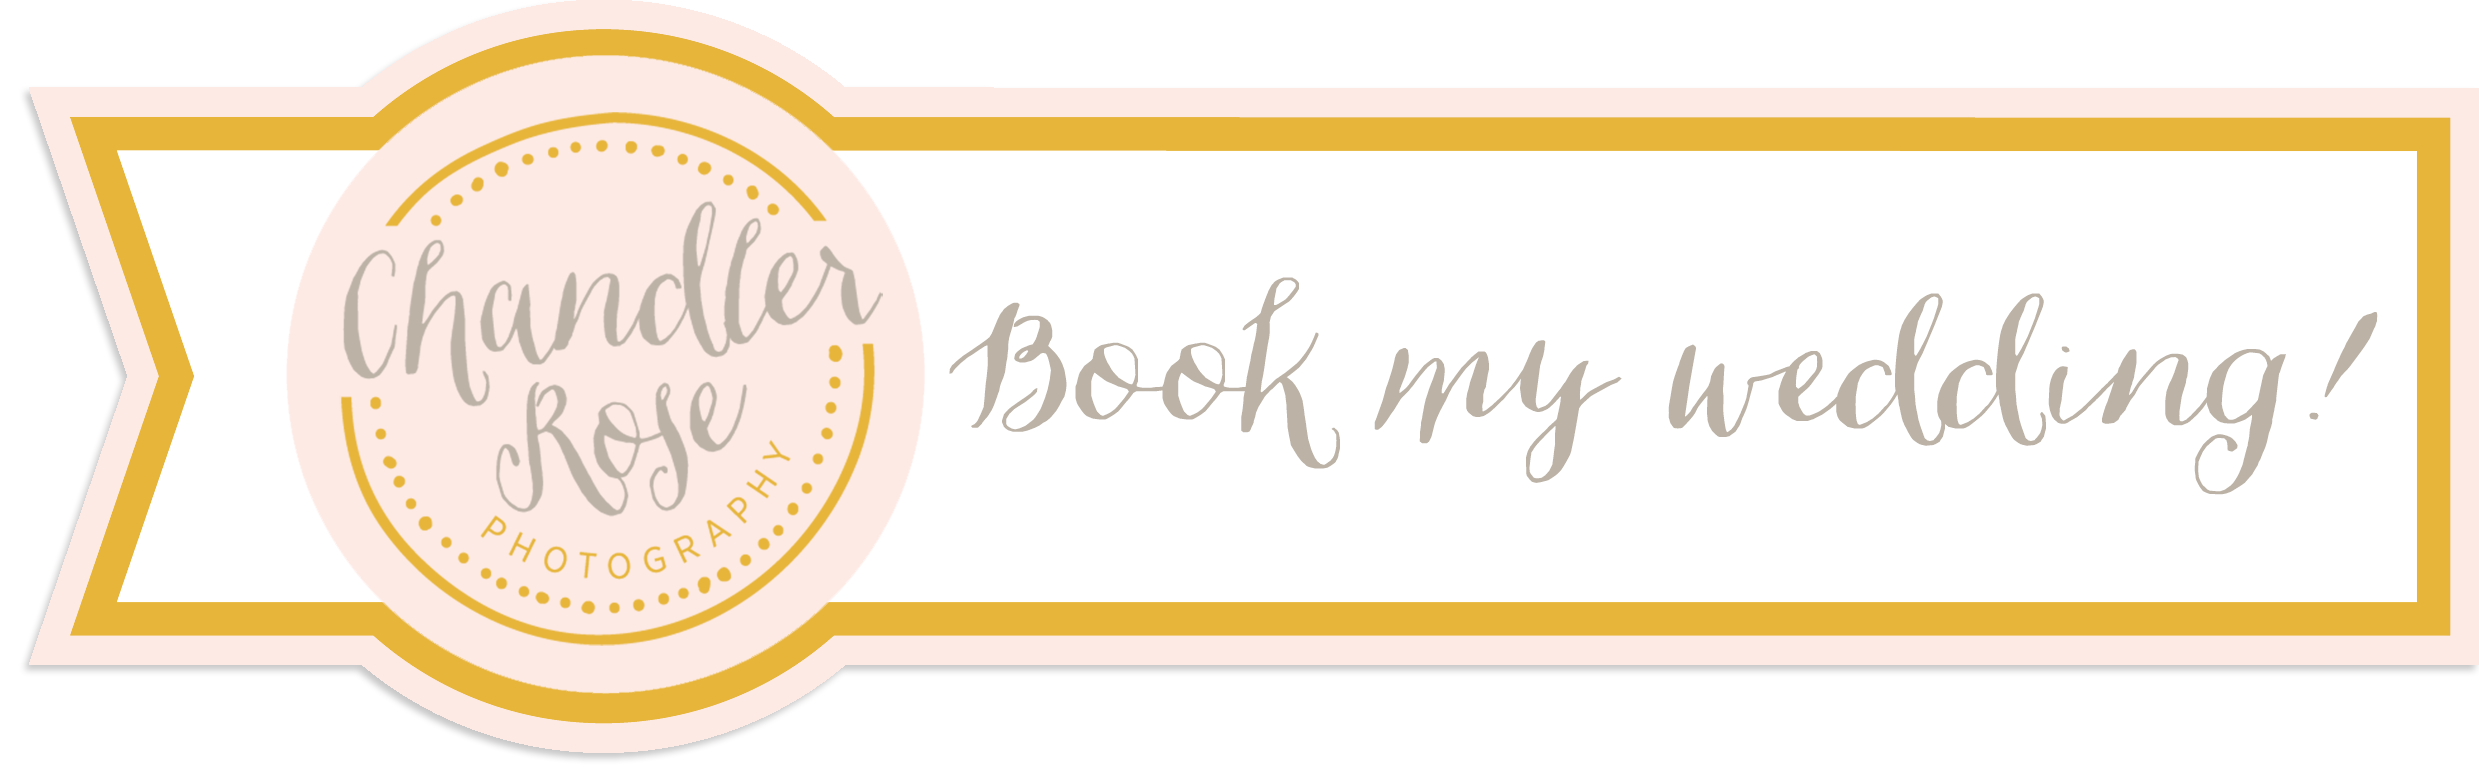 Book-my-wedding-with-chandler-rose-photography